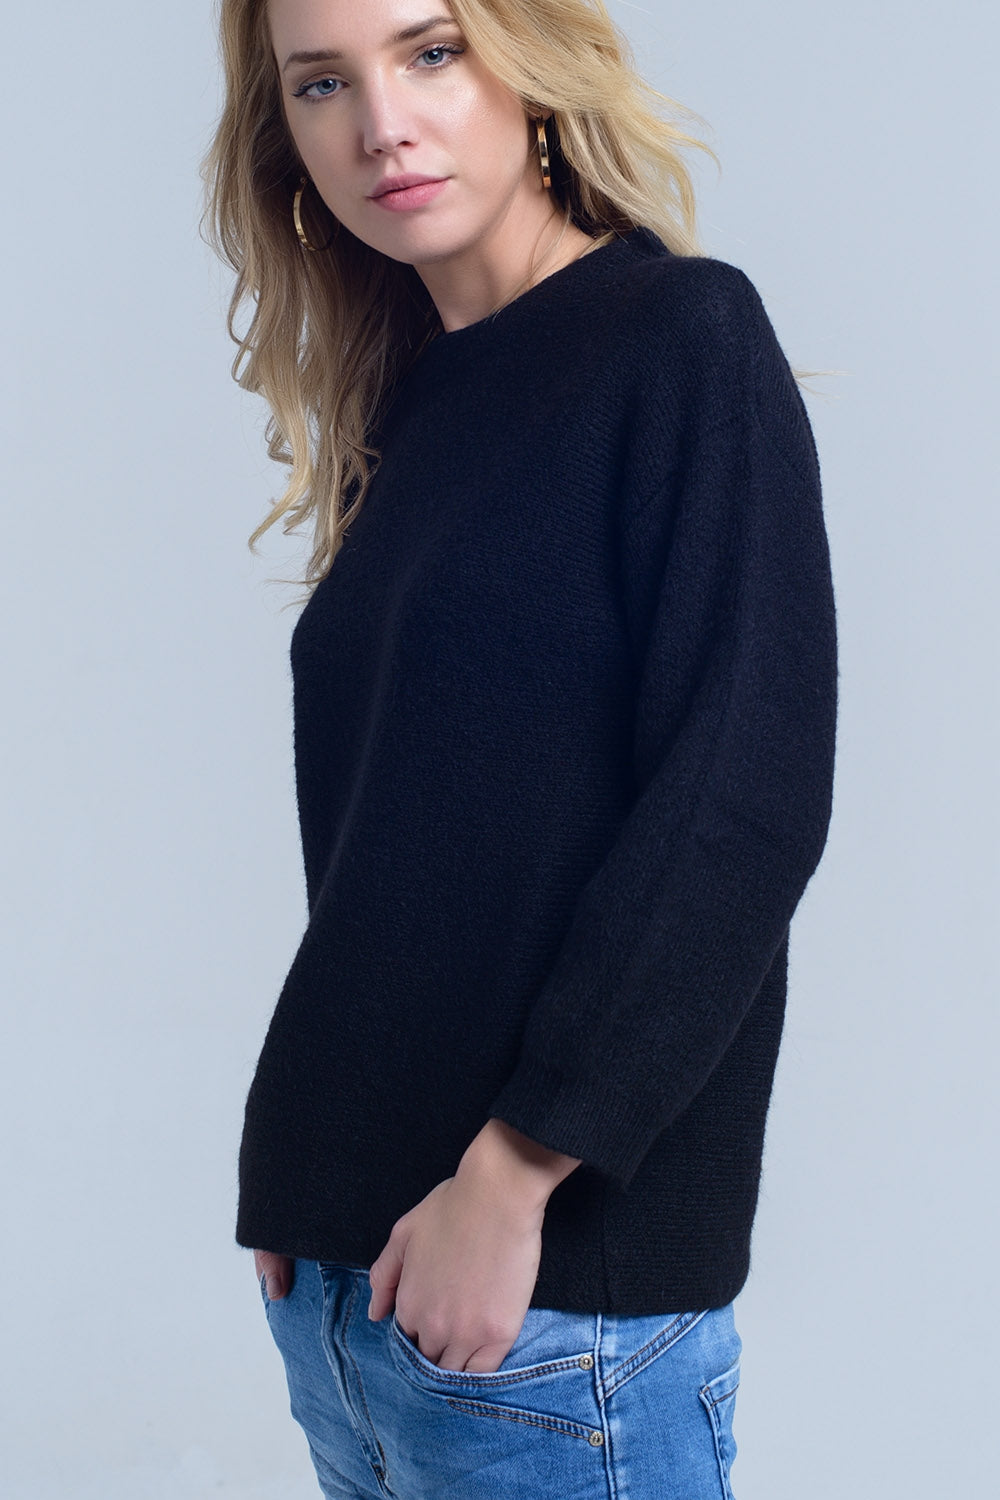 Black Knitted Crew Neck Sweater-Women - Apparel - Sweaters - Pull Over-Product Details Basic black crew neck sweater.-Keyomi-Sook